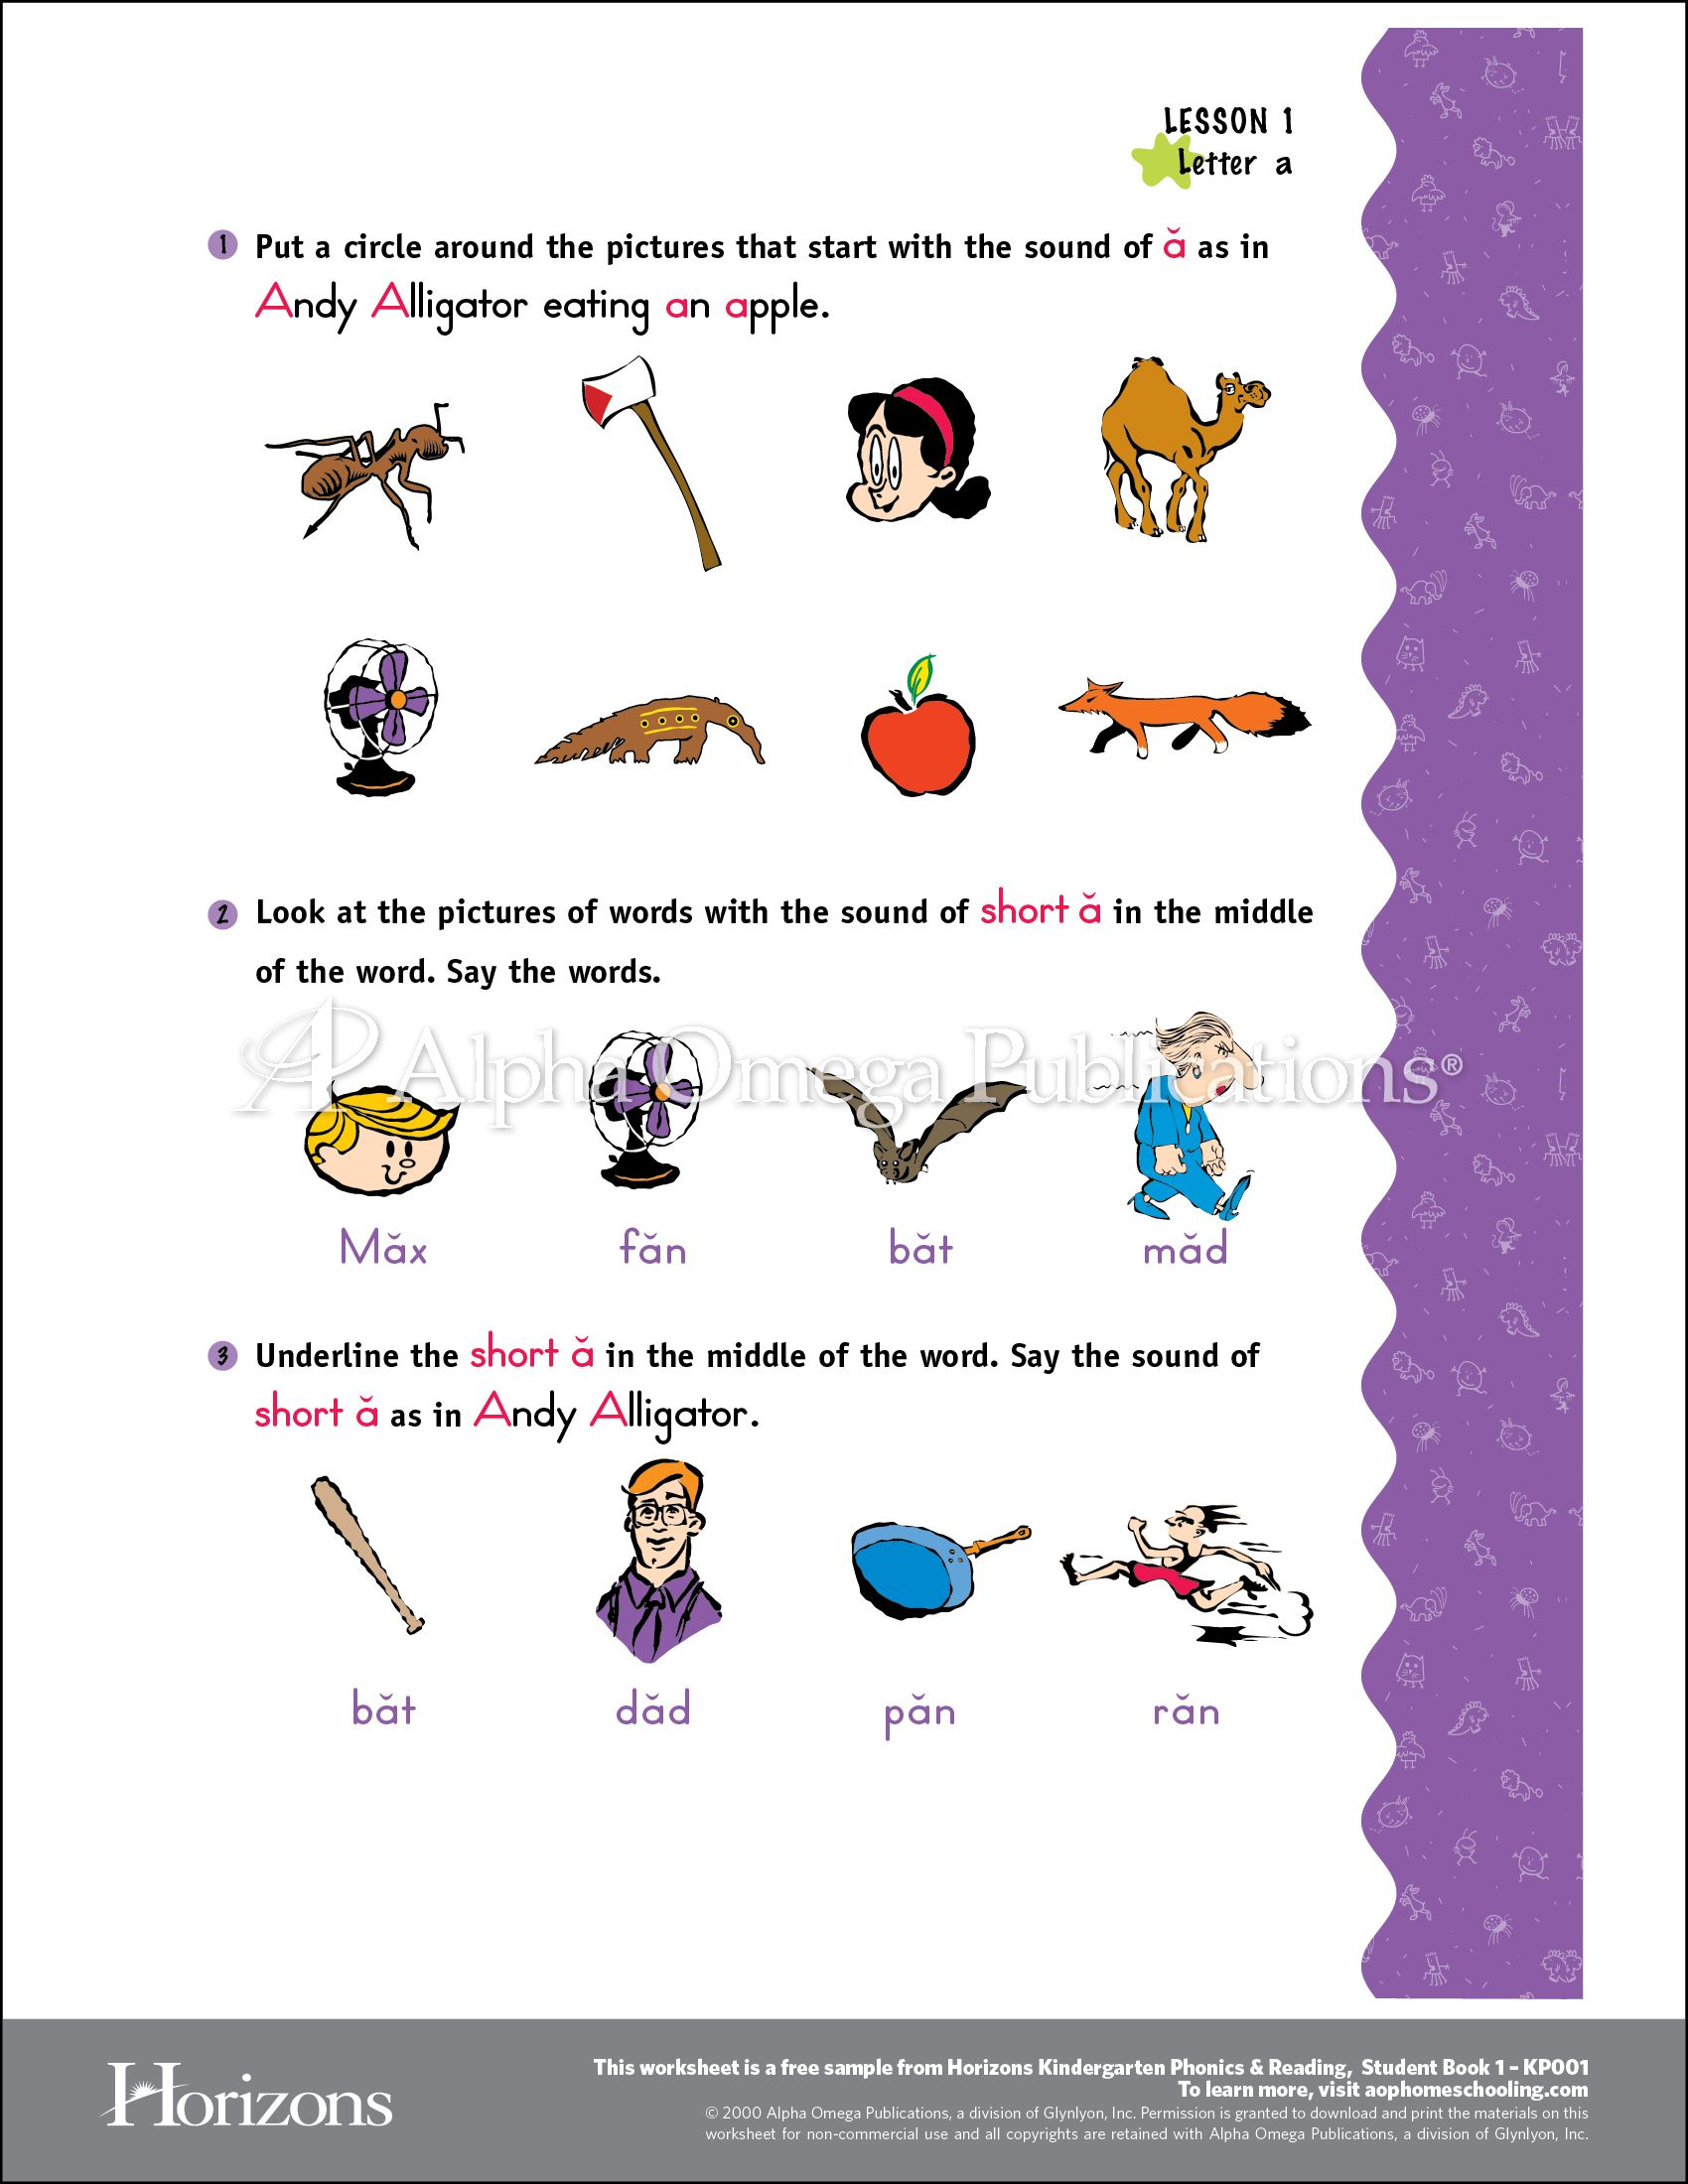 AOP Horizons free printable worksheet sample page download for ...